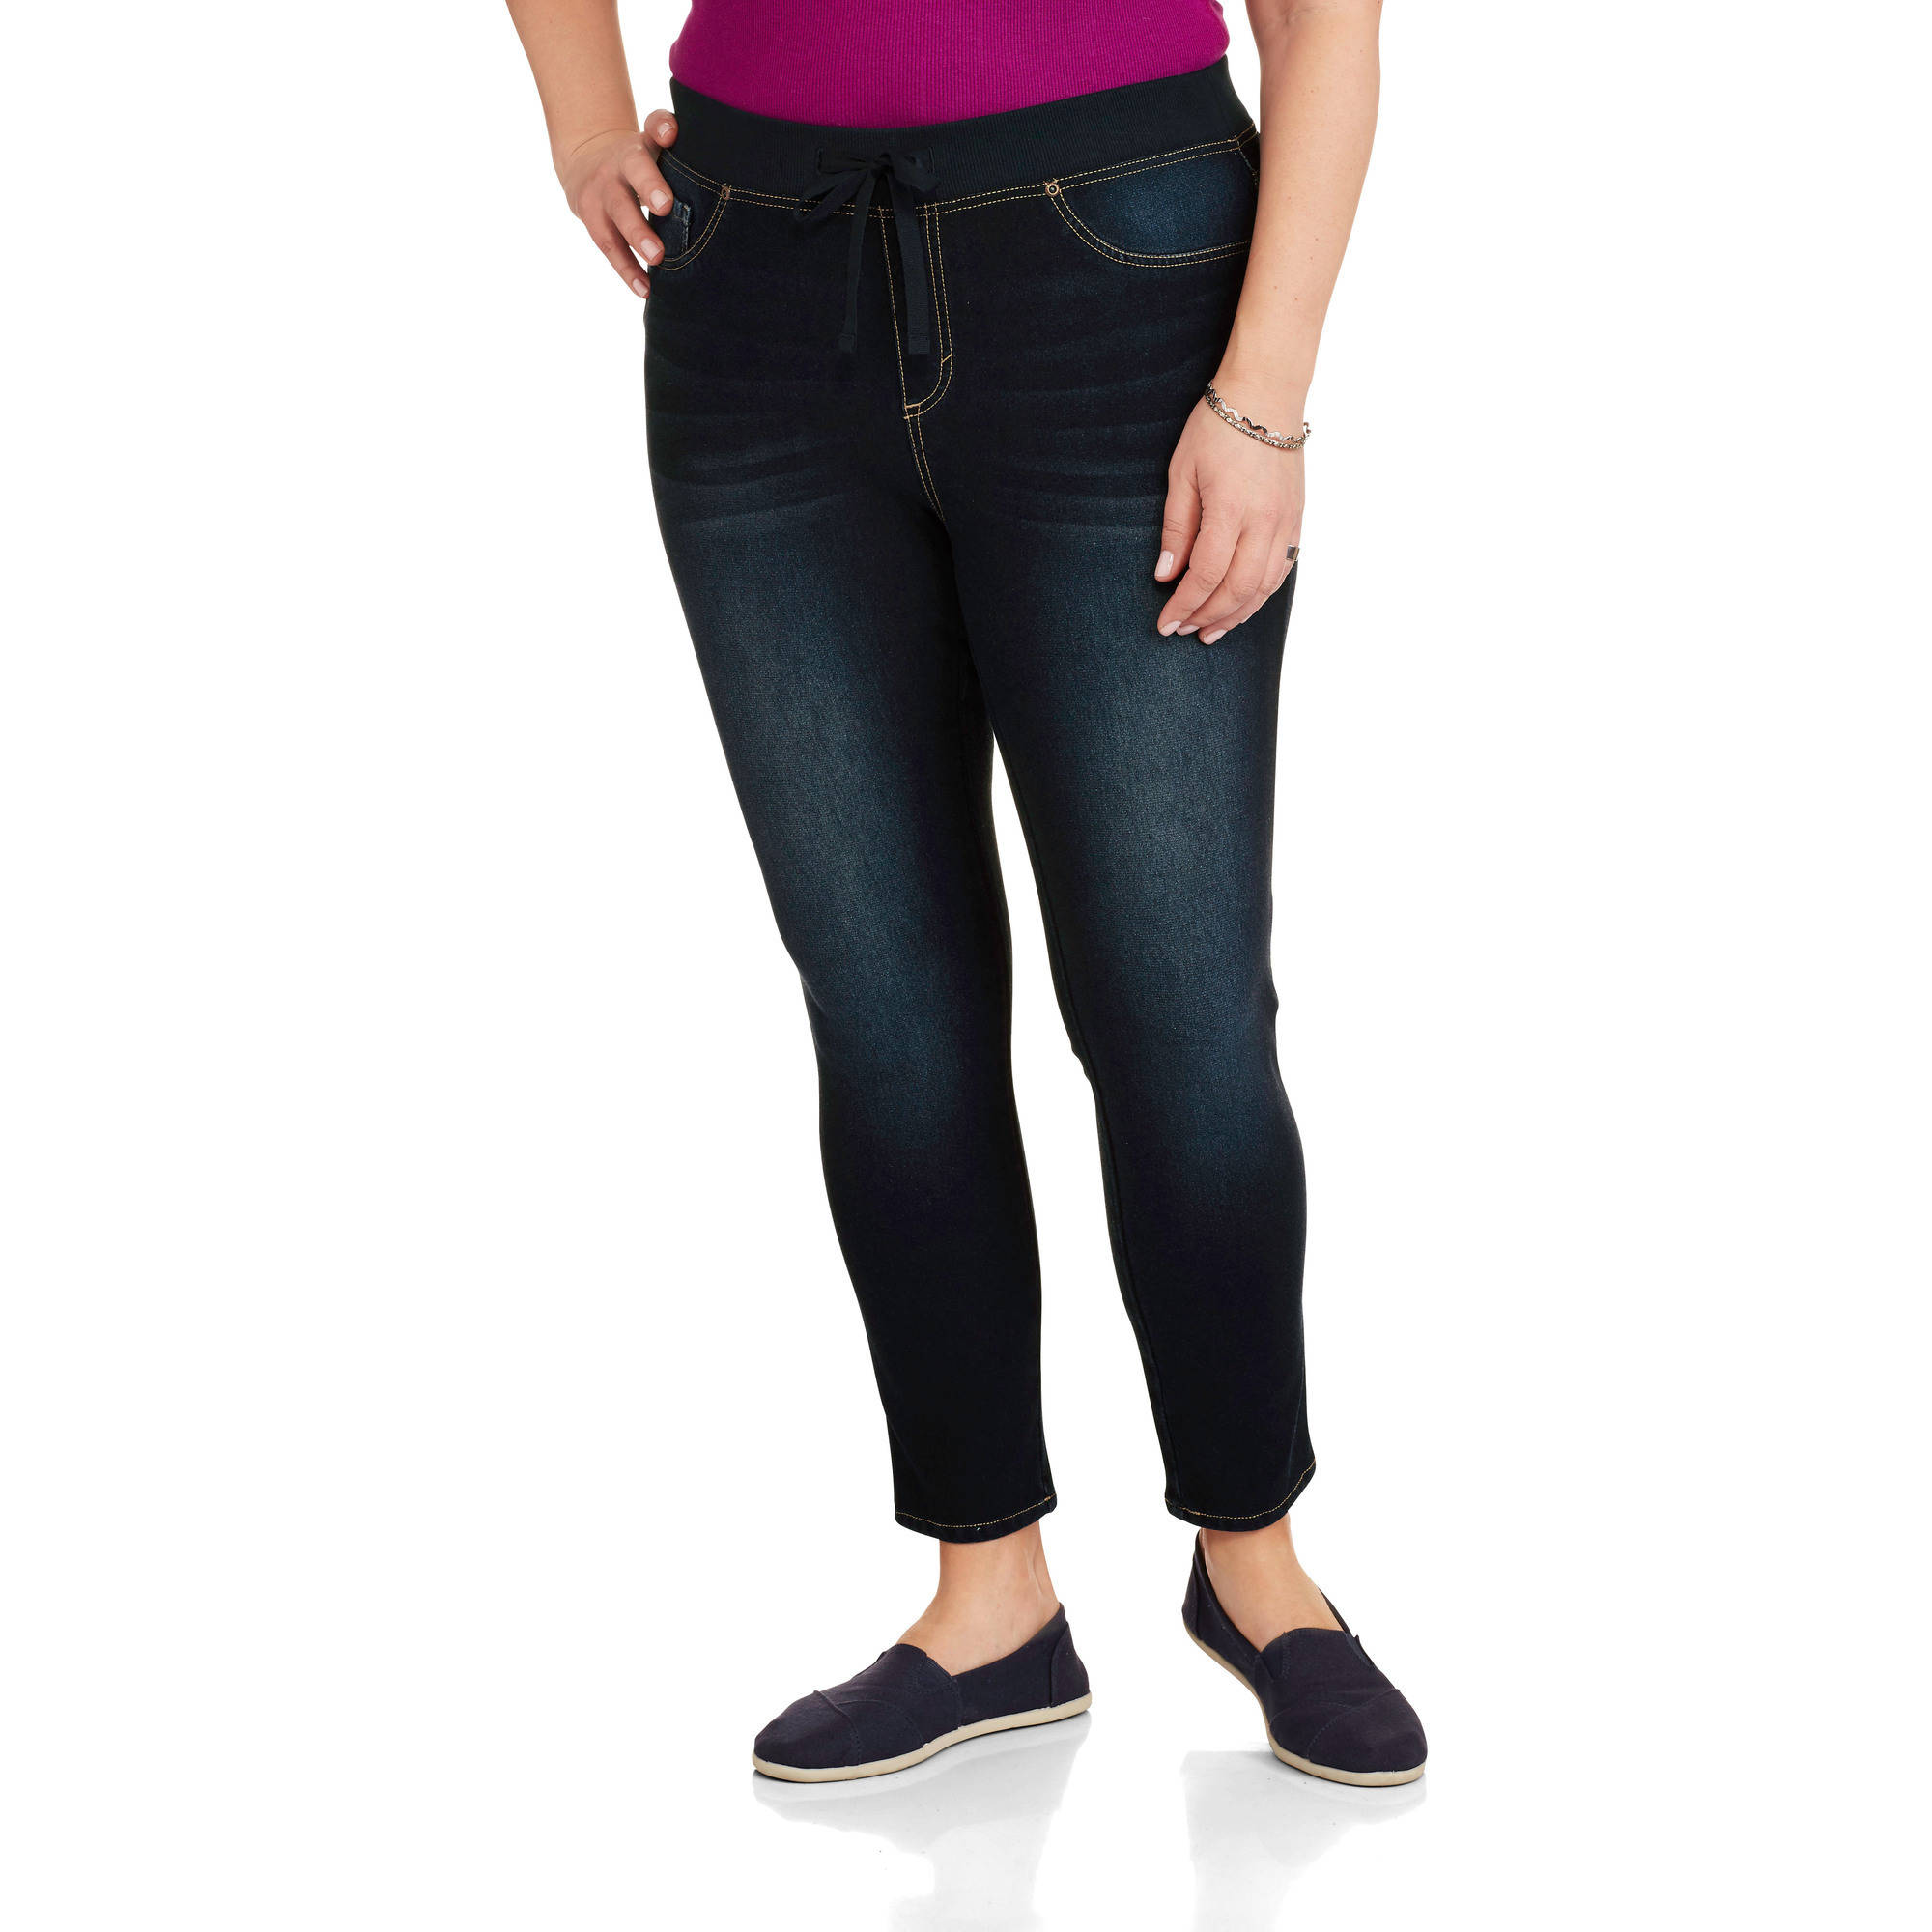 Faded Glory Women's Plus-Size French Terry Jean